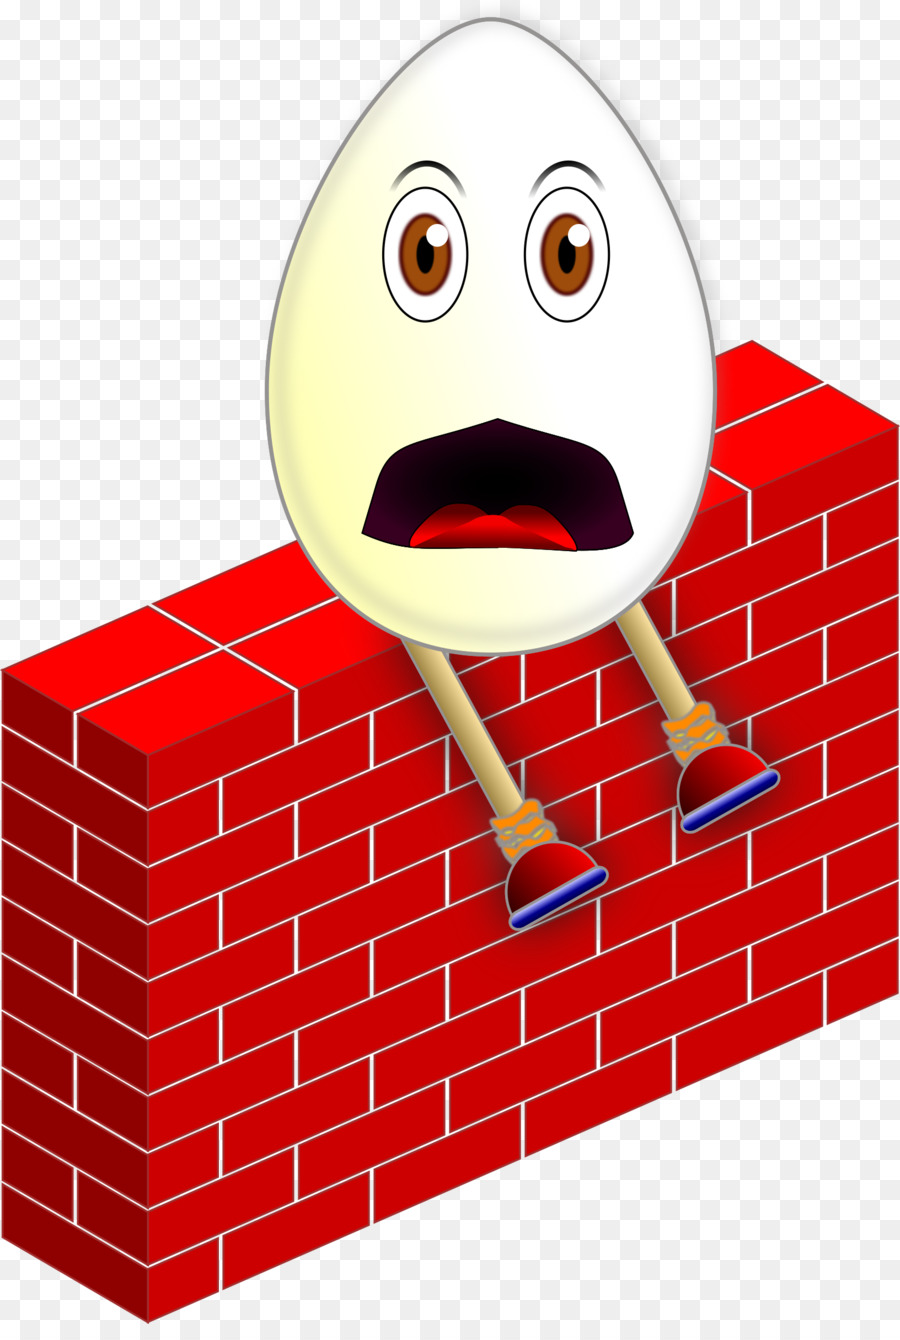 Building cartoon png download. Humpty dumpty clipart animated